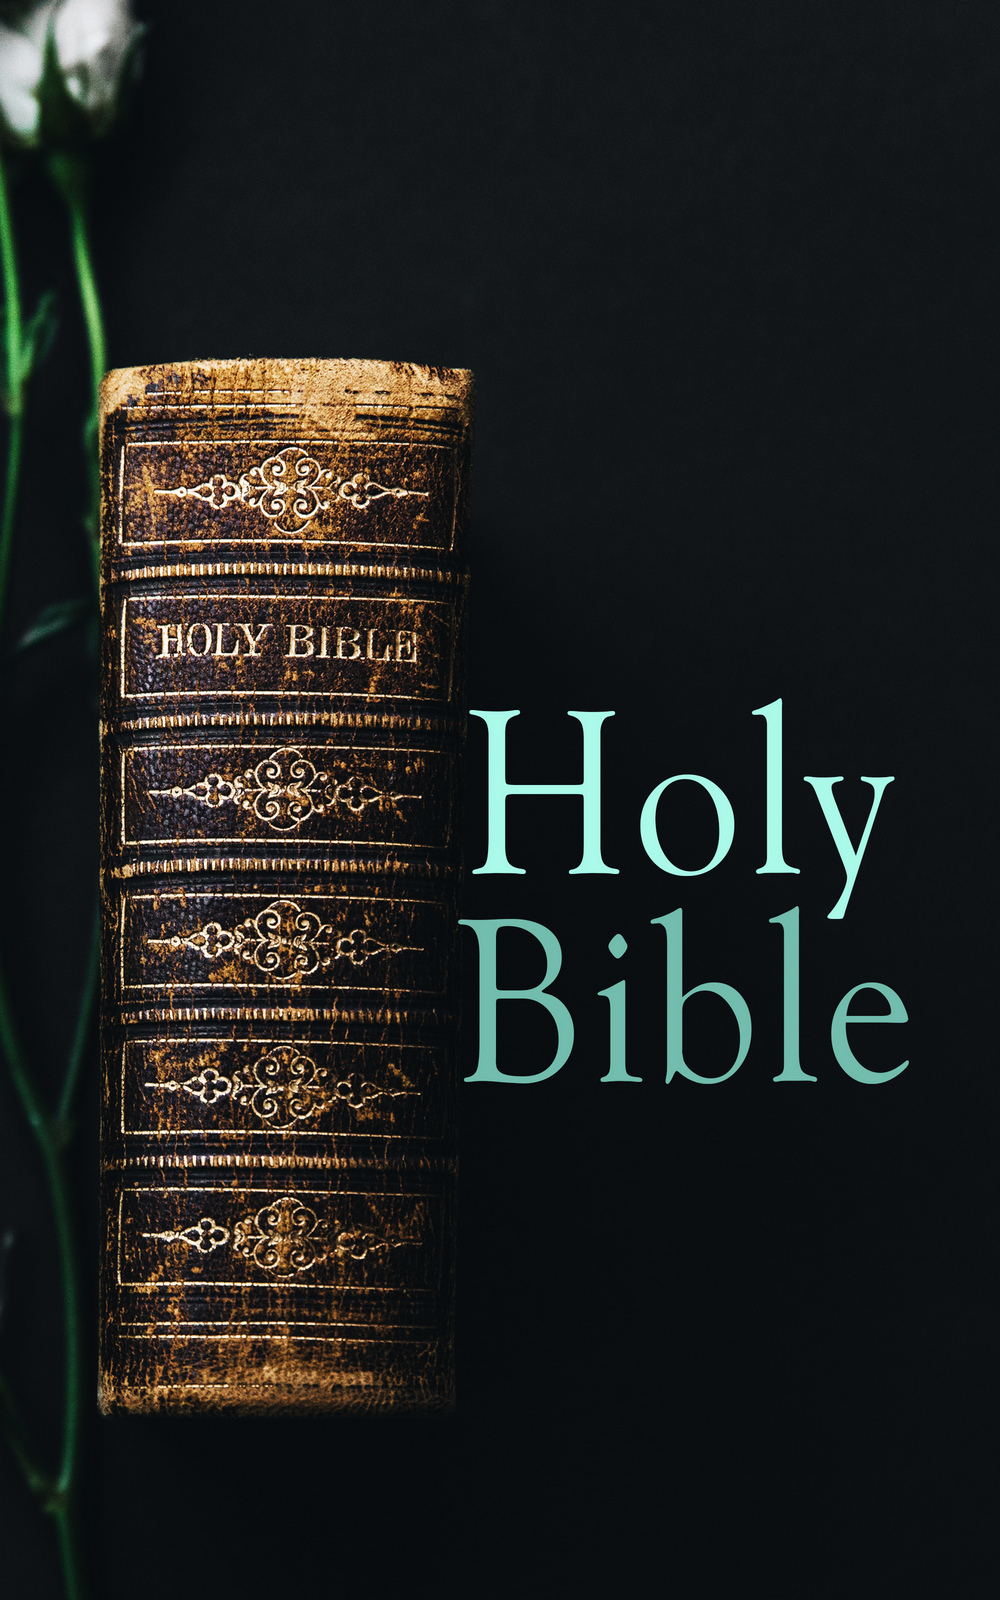 The Bible Holy Bible bonnie biafore visio 2007 bible